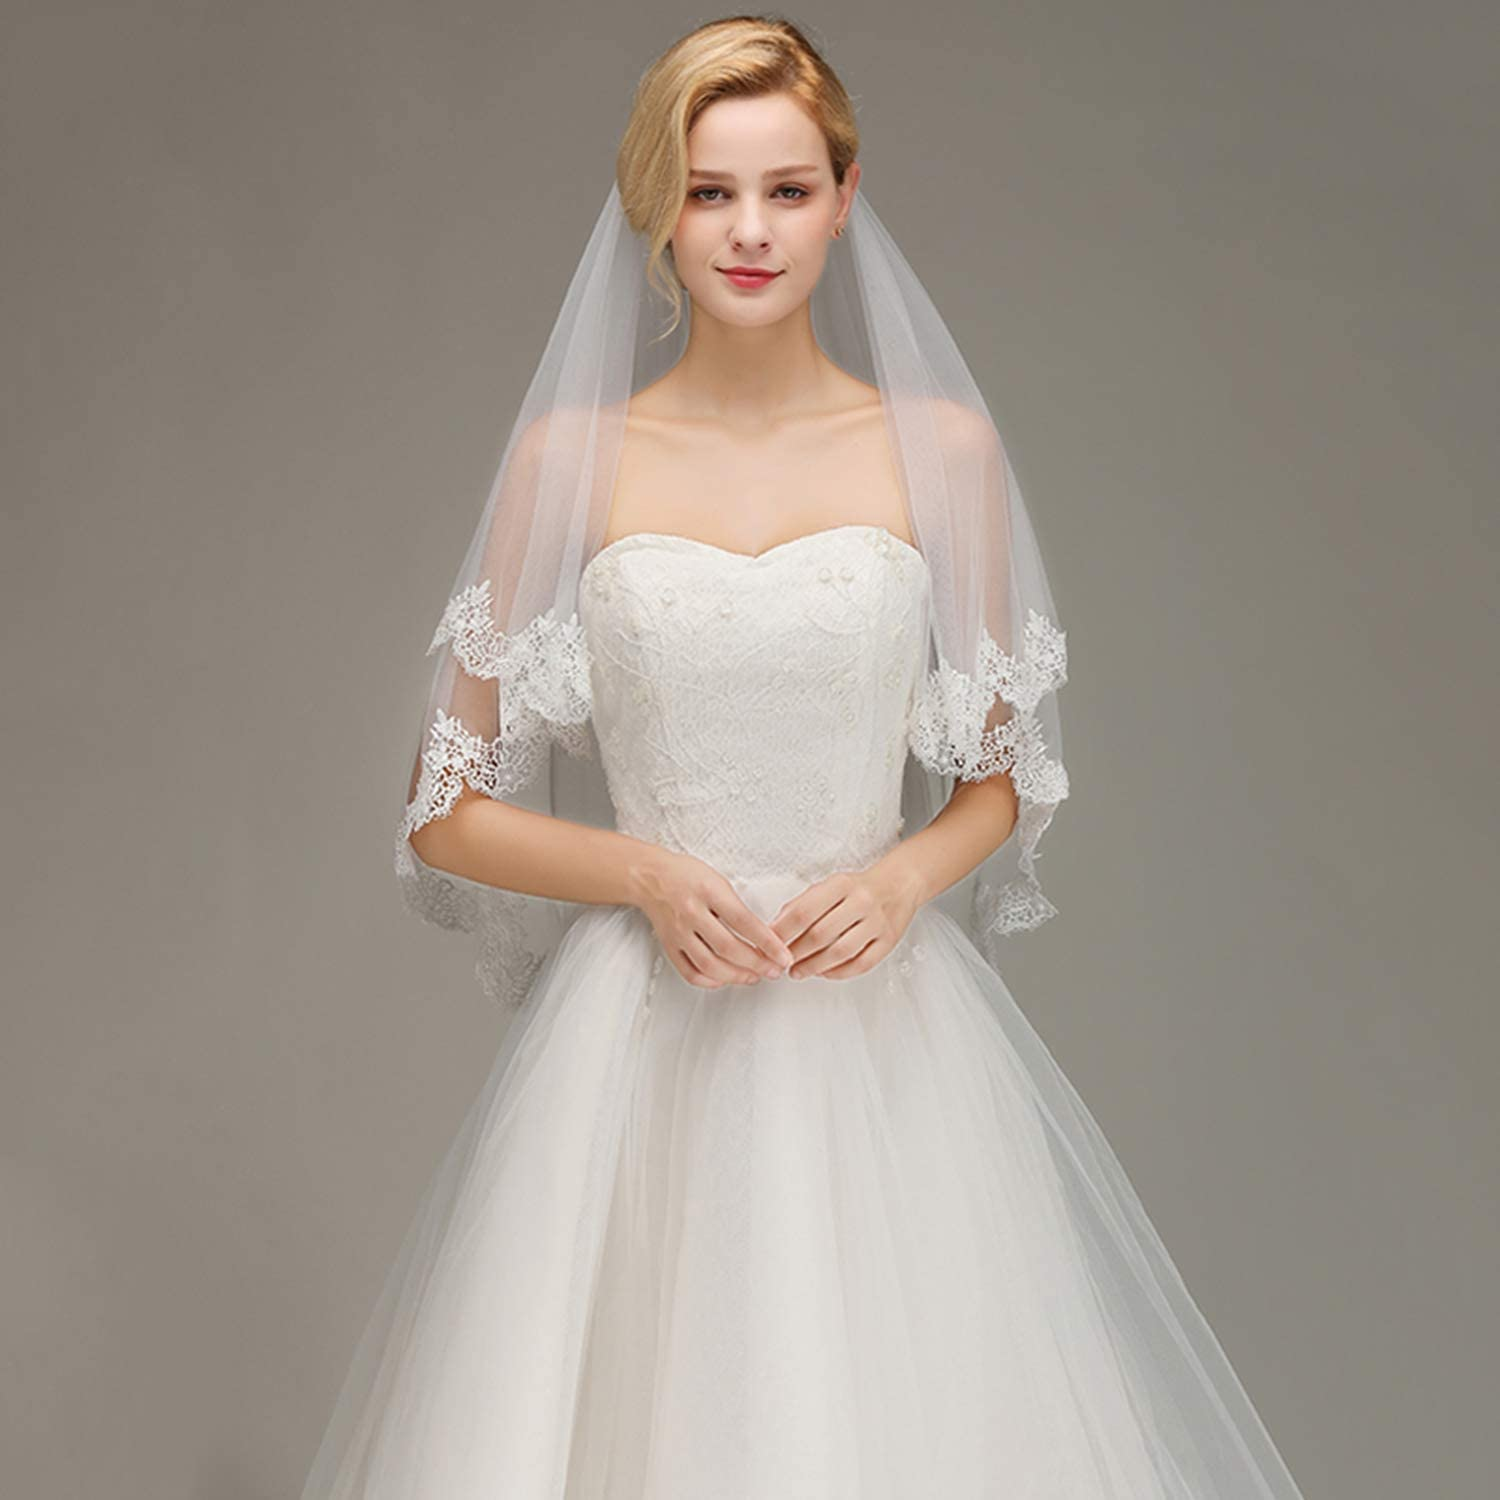 Voice of Bride Lace Edge Short Wedding Veil with Comb Two Layers Tulle Bridal Veil Wedding Accessories